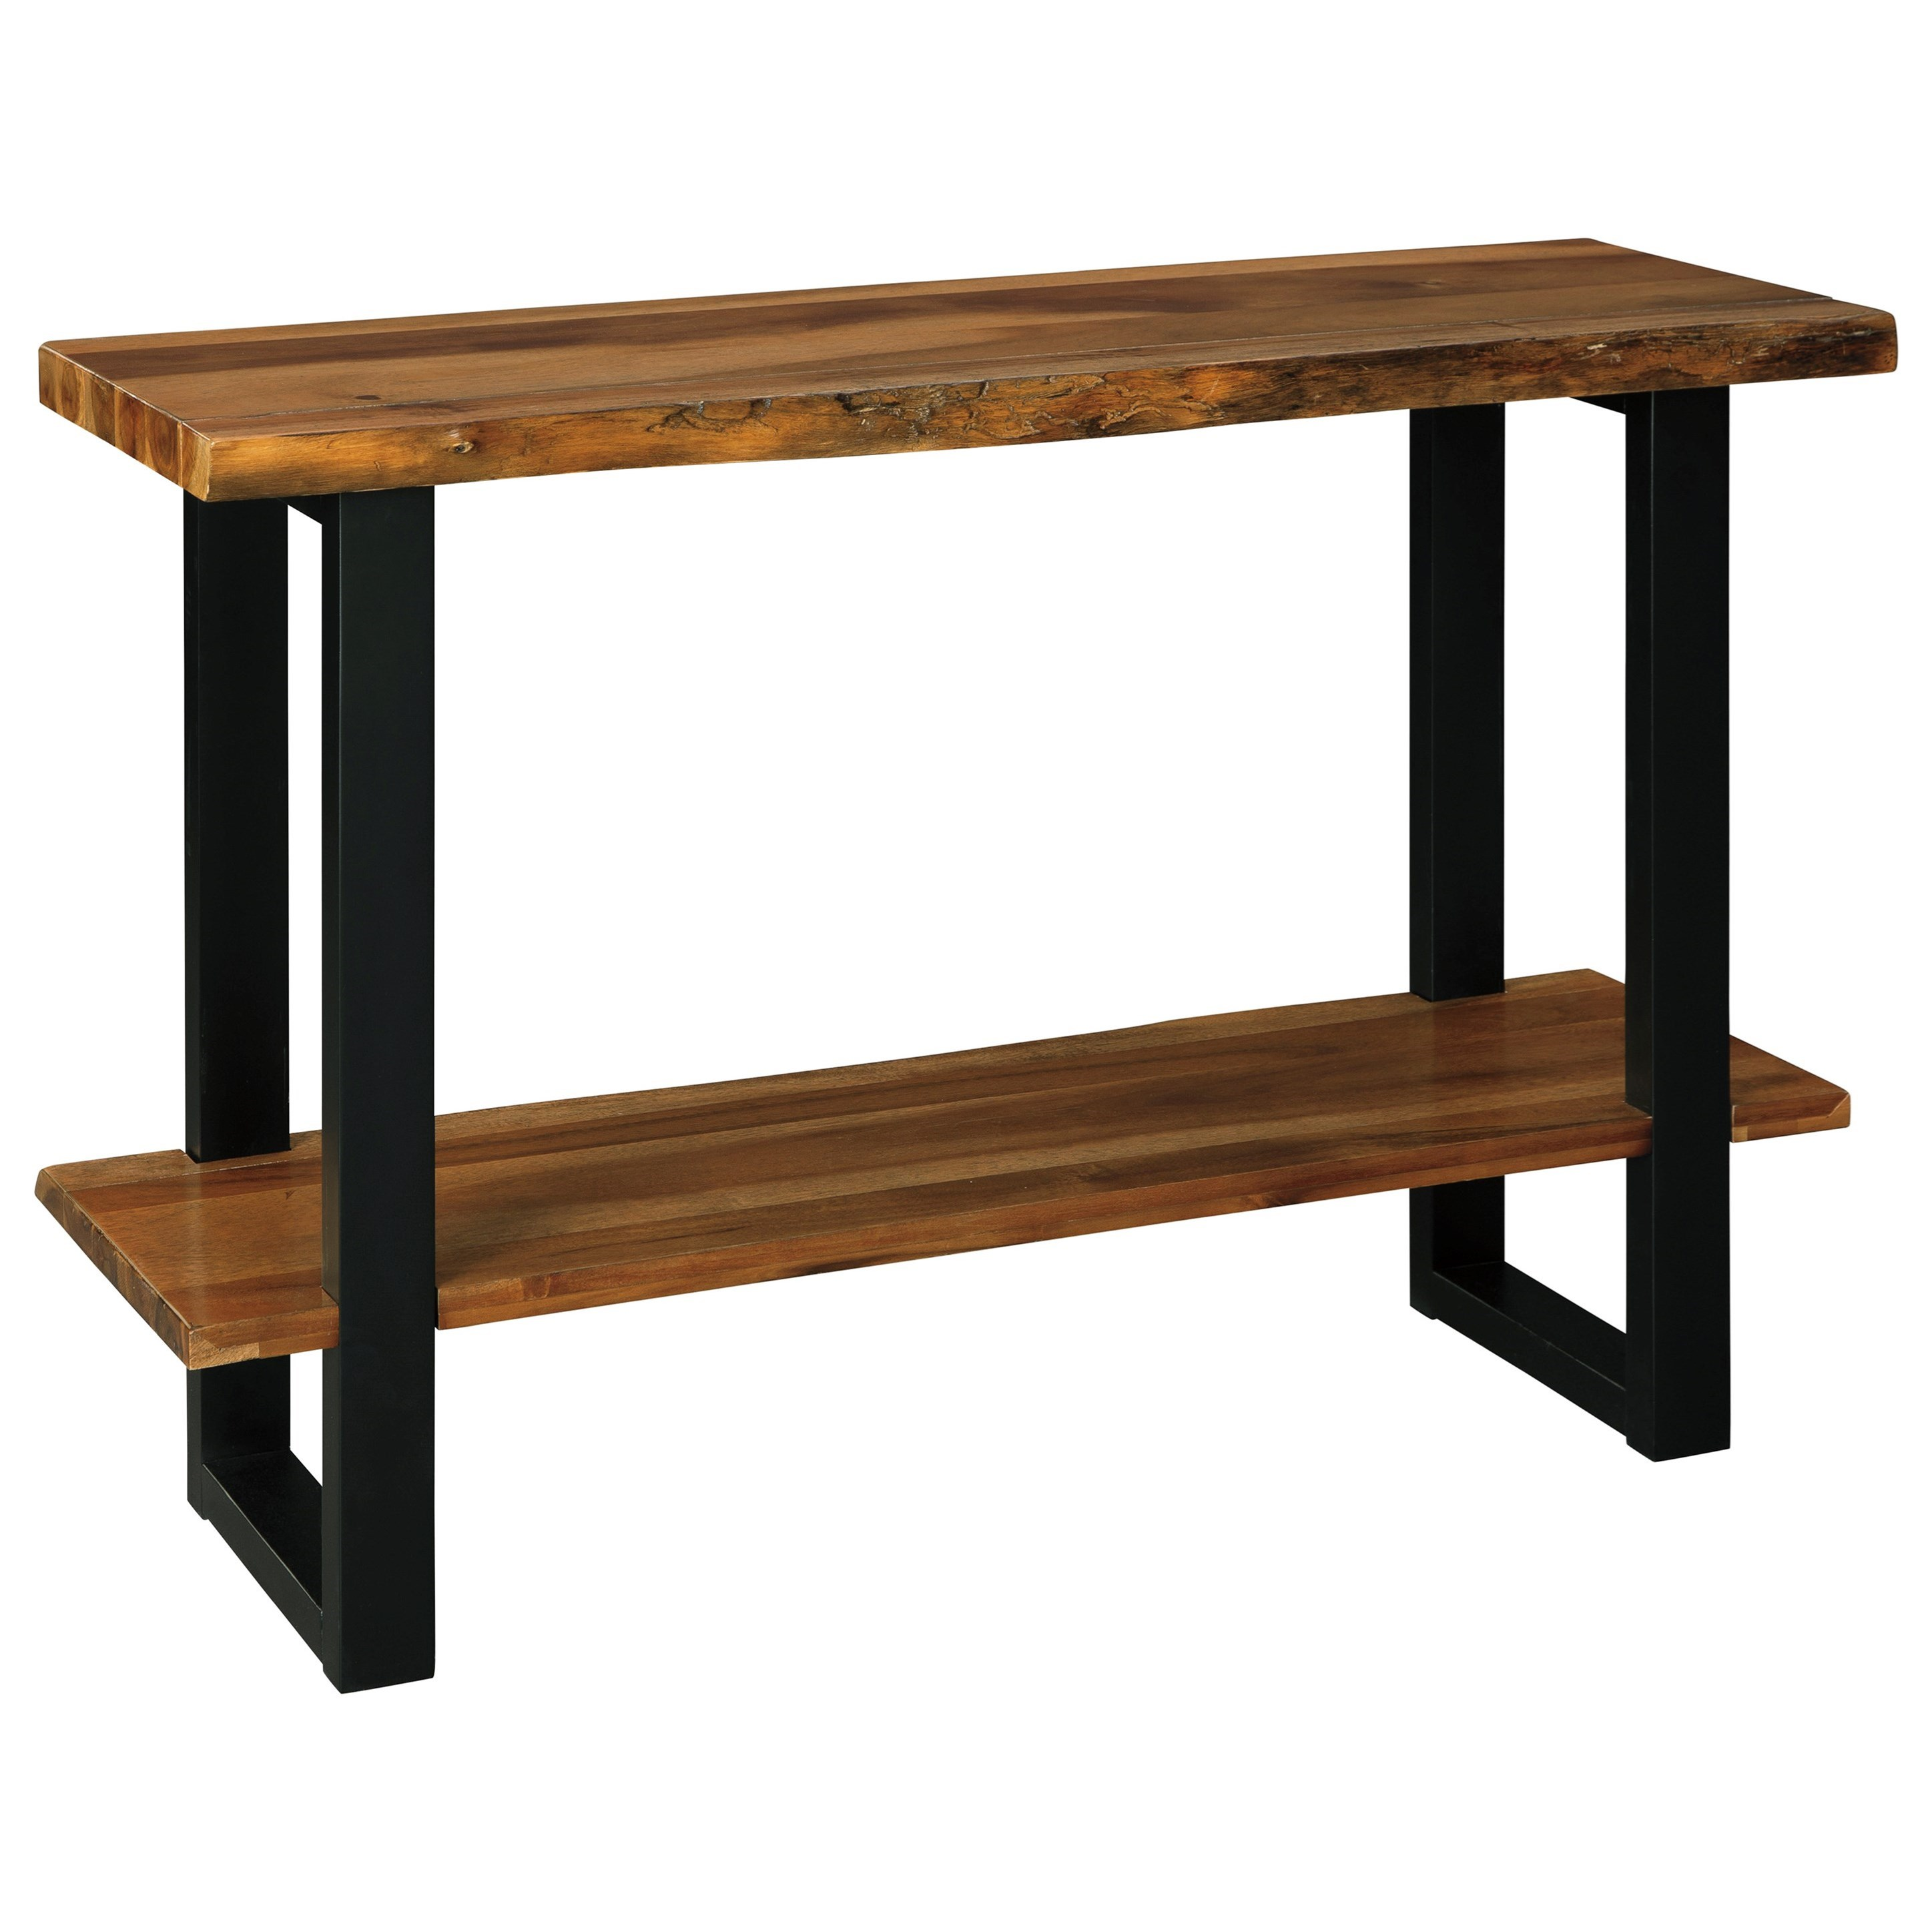 Brosward Sofa Table by Signature Design by Ashley at Northeast Factory Direct